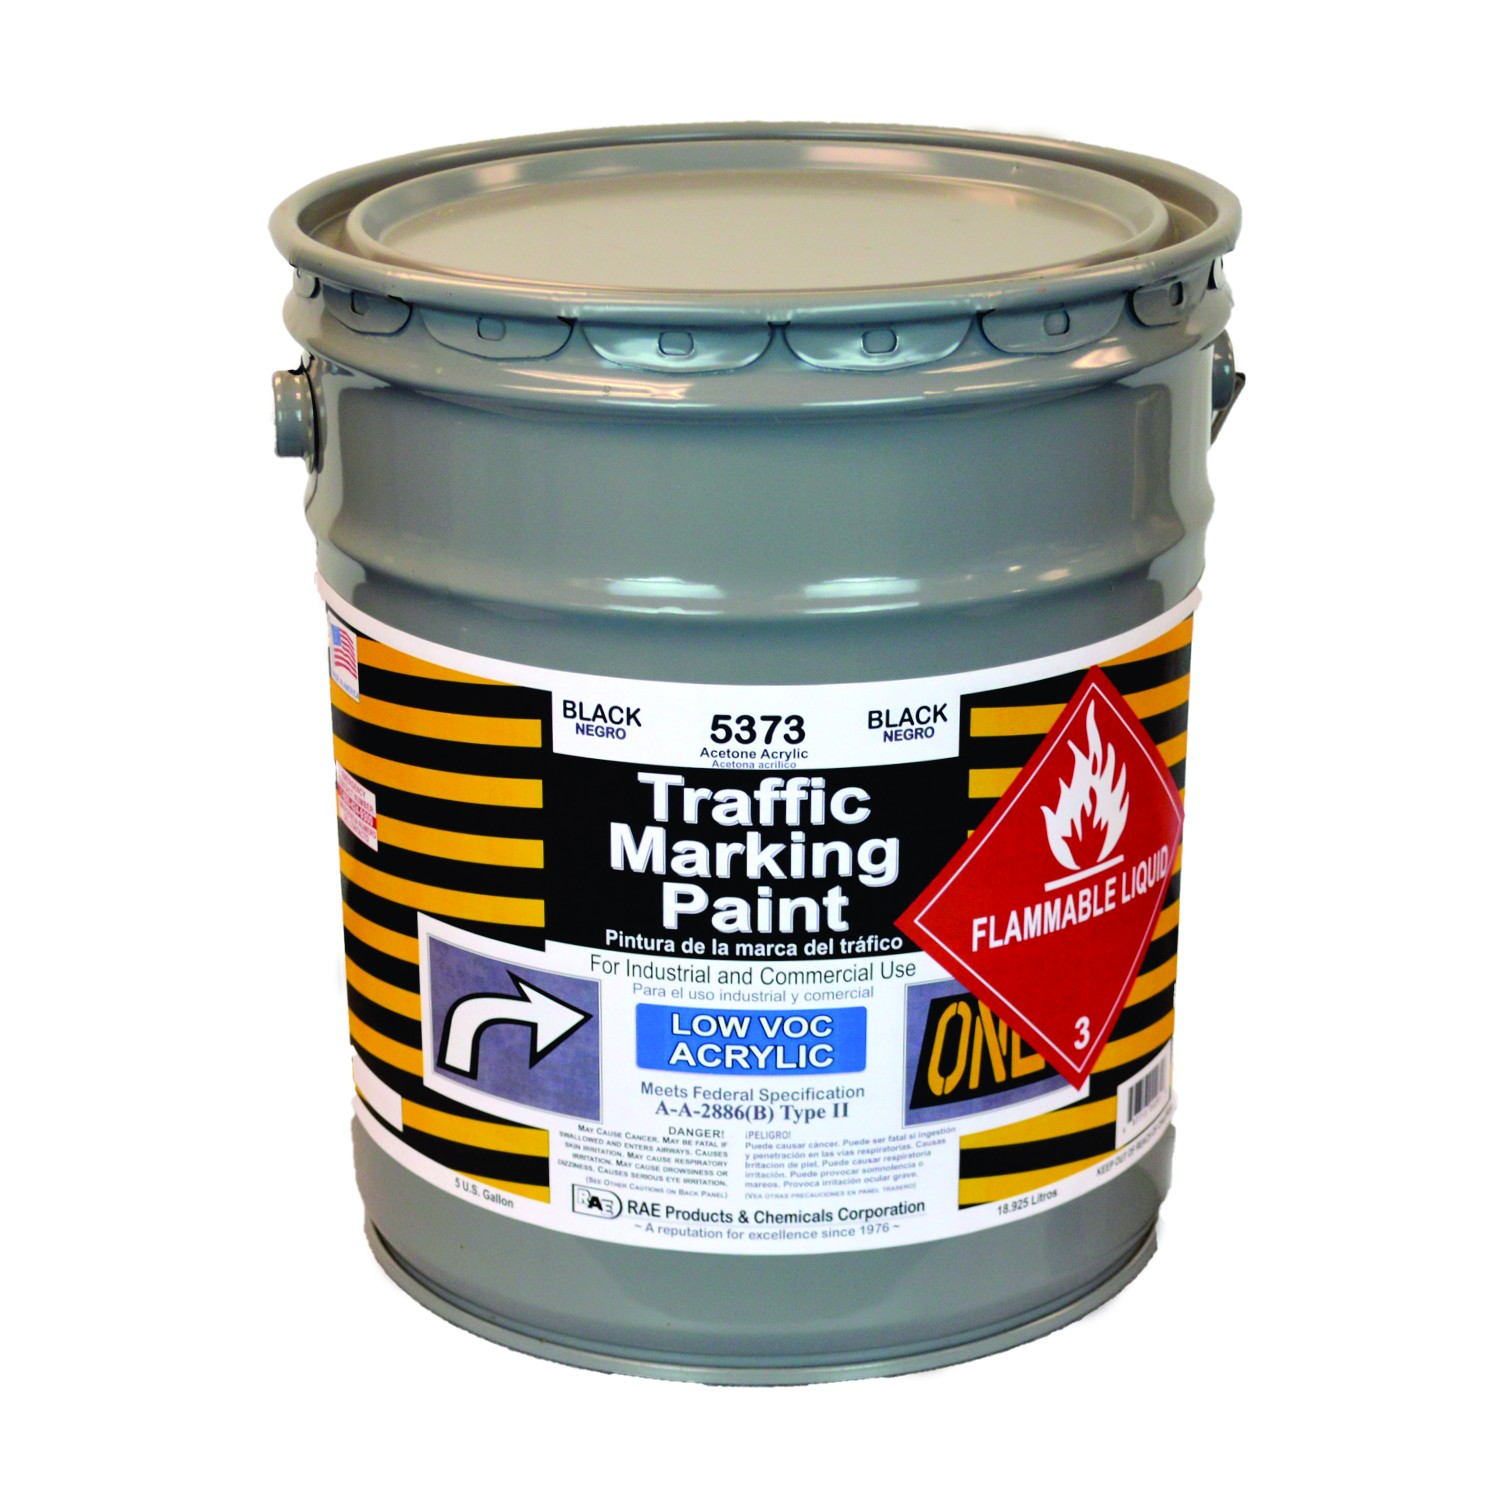 RAE Black - 5 Gallon - Acetone Acrylic - Low VOC - Solvent Based Marking Paint - 5373-05 - Rae Products and Chemicals Corp | RAE Paint